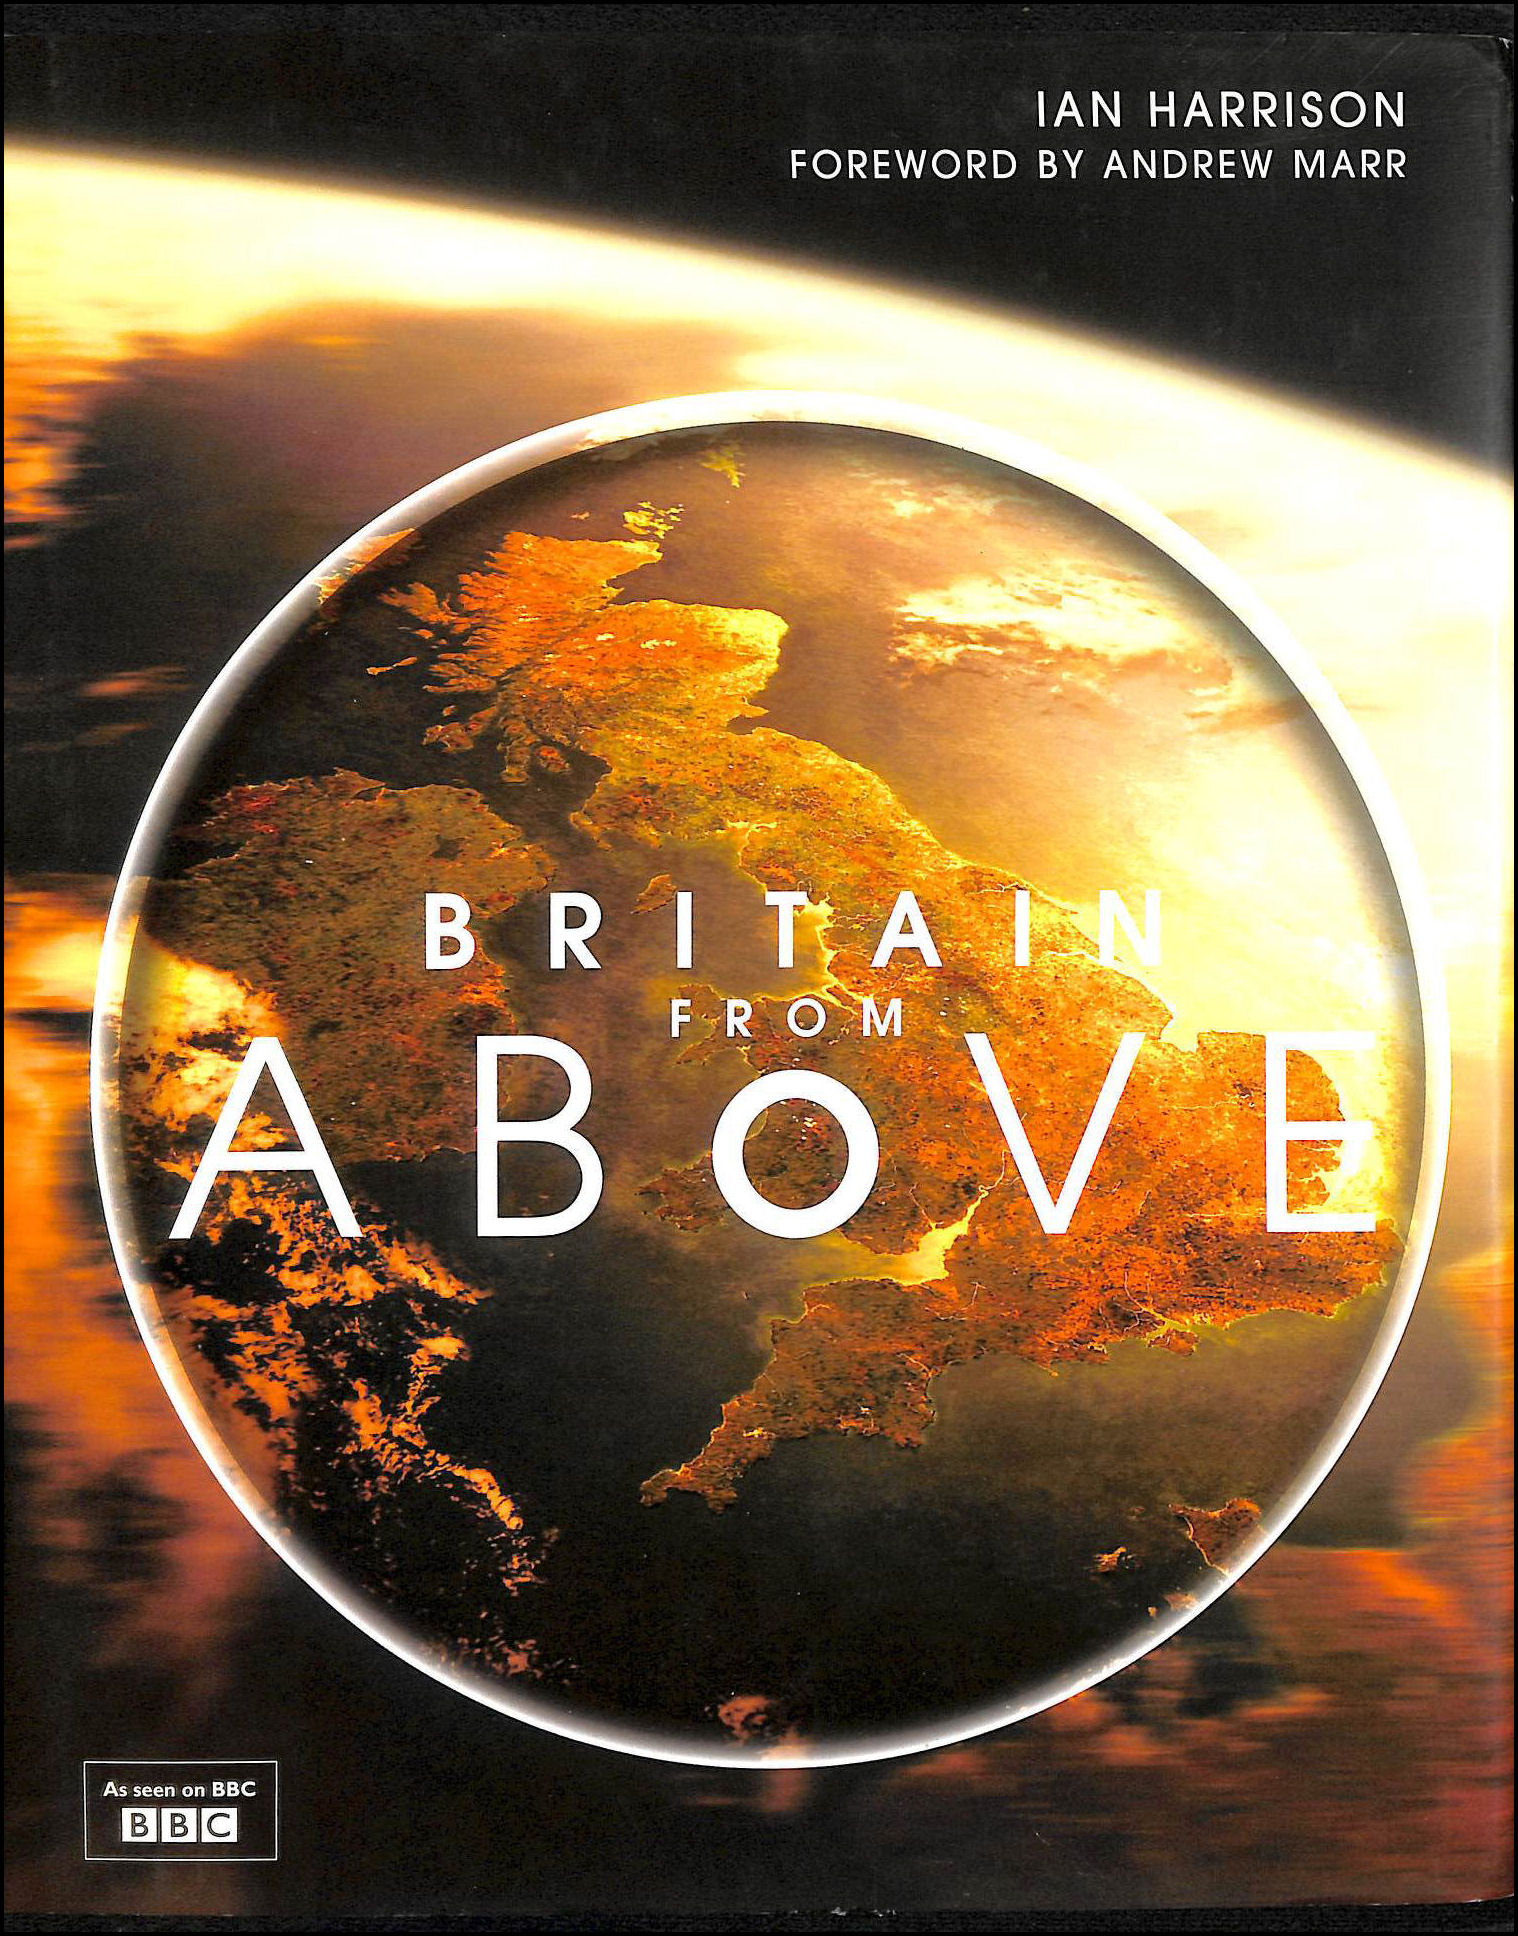 Britain From Above, Ian Harrison; Andrew Marr [Foreword]